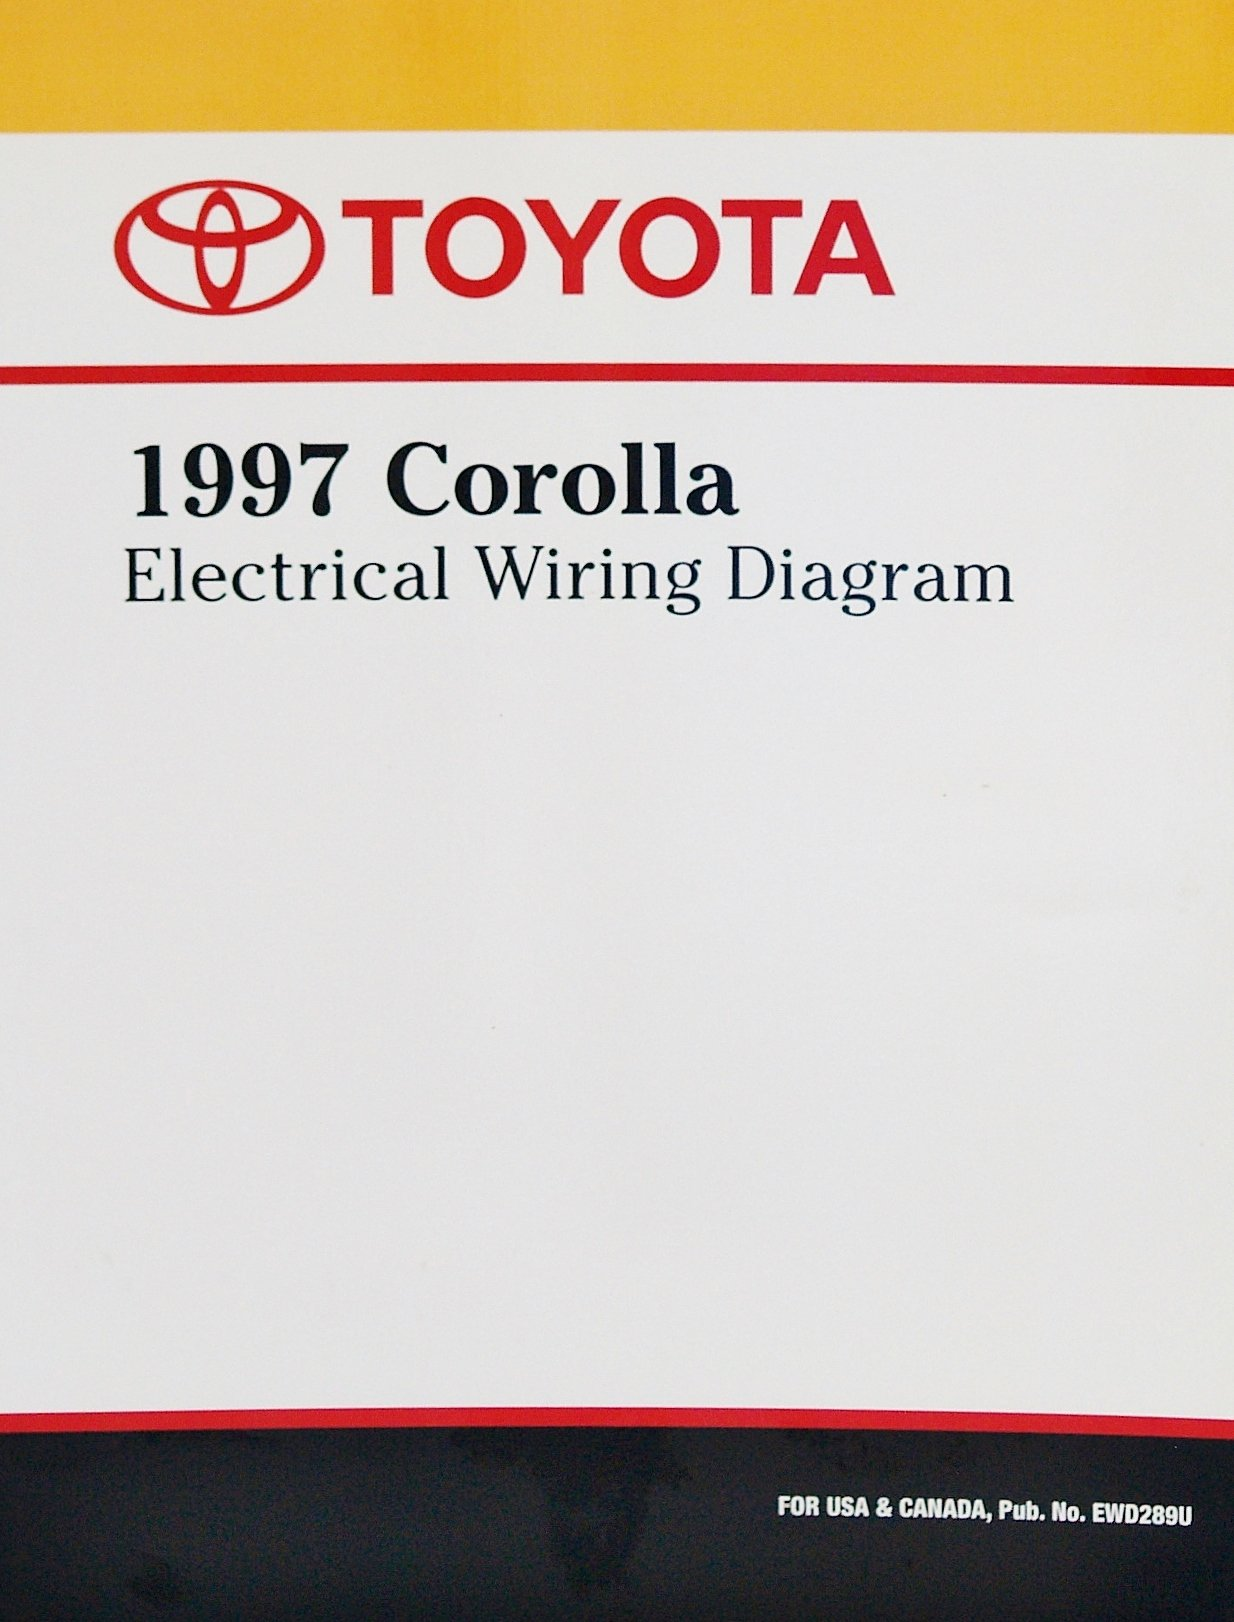 1997 Toyota Corolla Electrical Wiring Diagram: Toyota Motor Corporation:  Amazon.com: Books | 1997 Toyota Corolla Wiring Diagram |  | Amazon.com